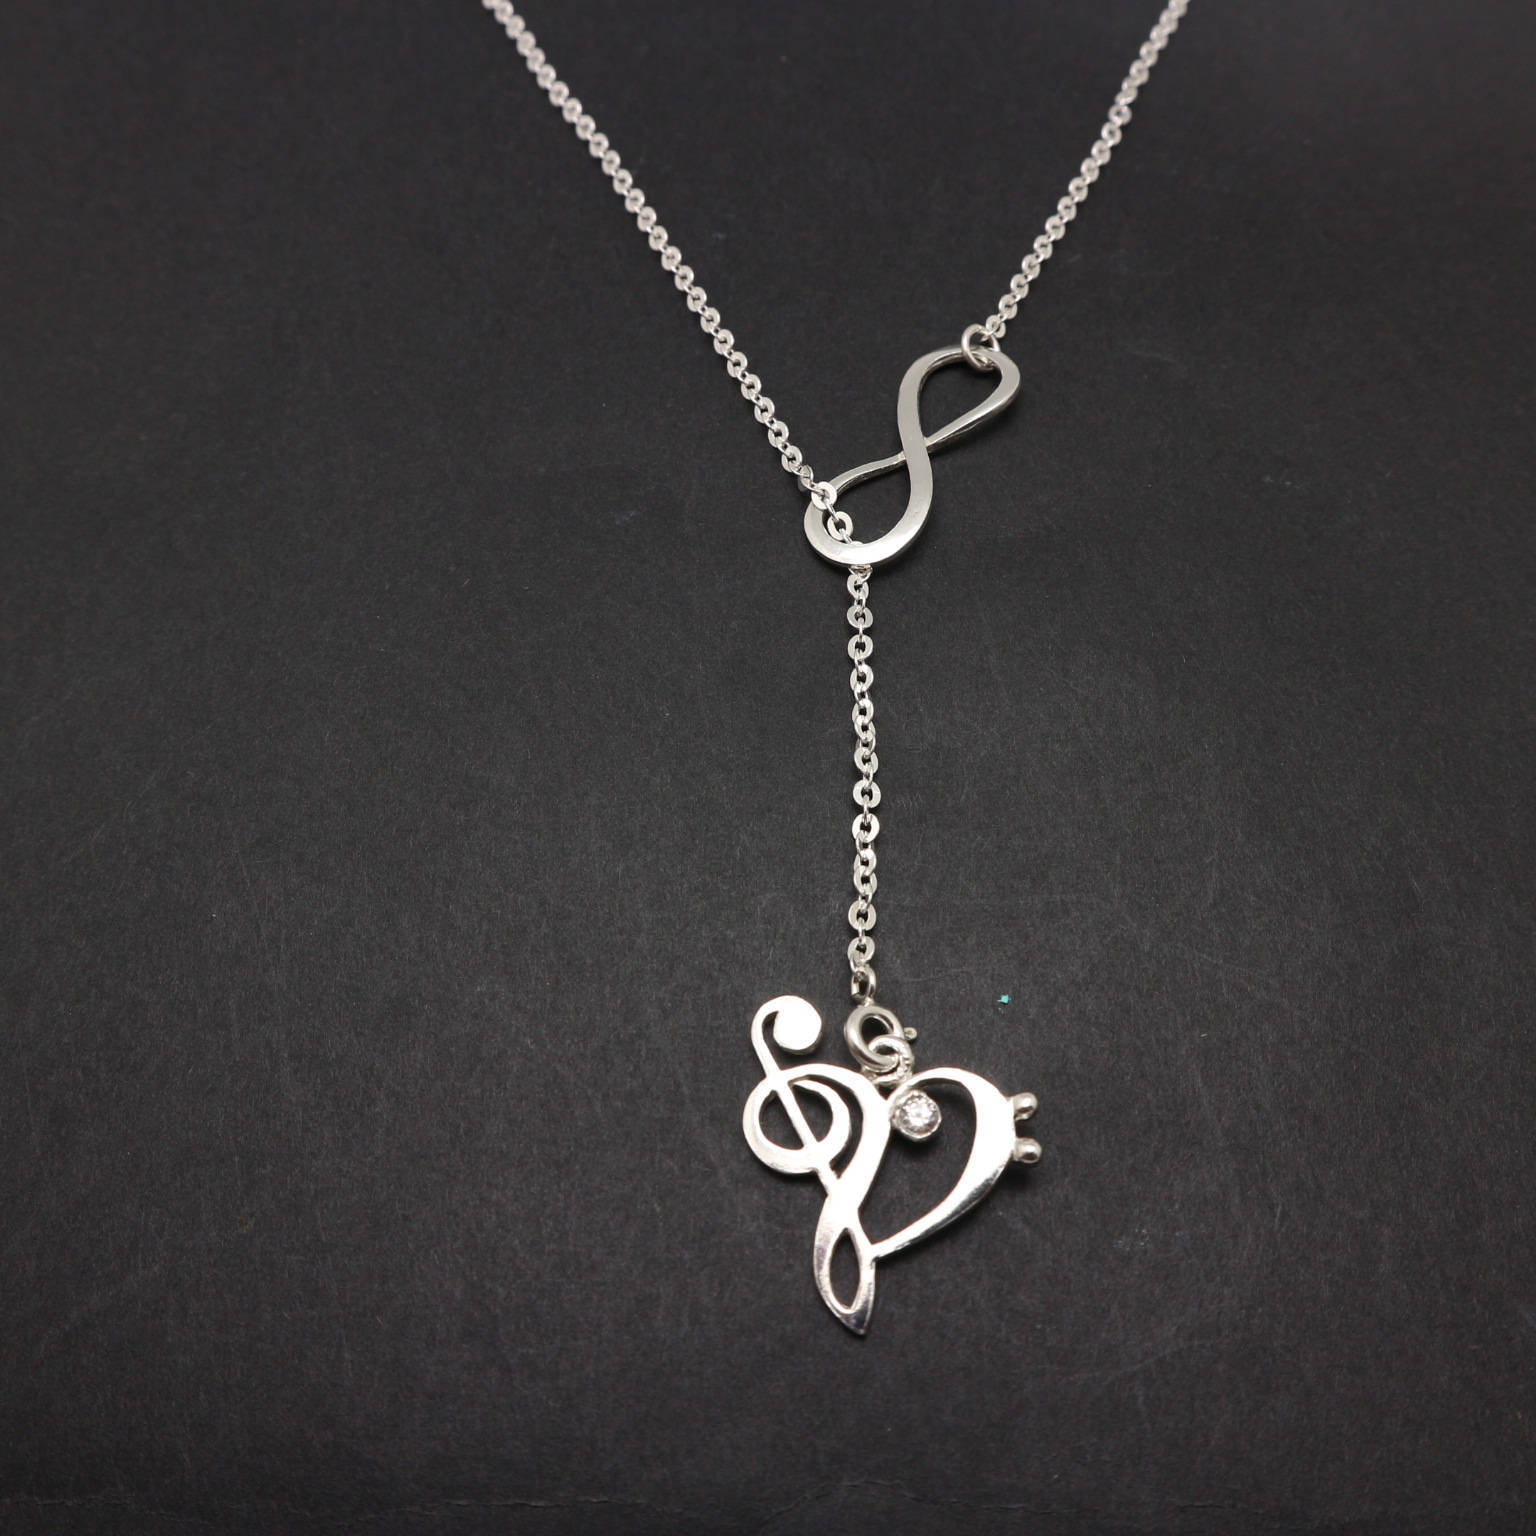 Handmade 925 Sterling Silver Double Infinity Music Note Lariat Y Necklace